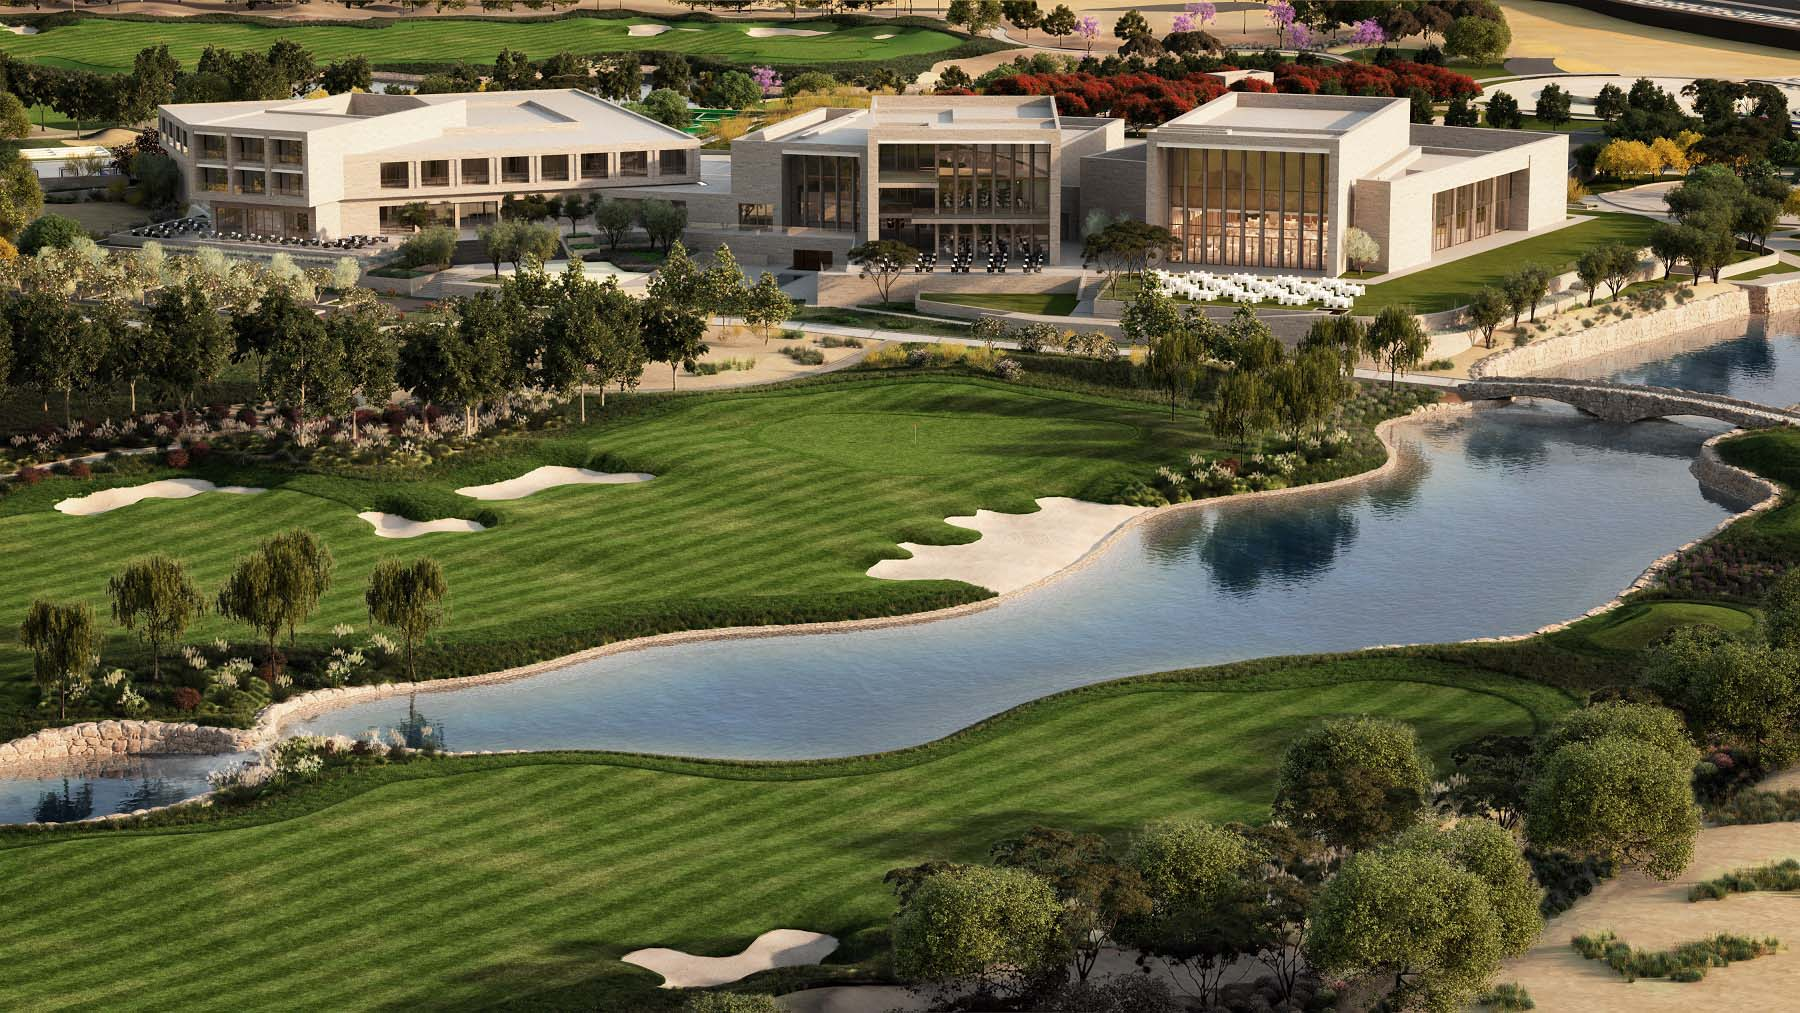 qatar foundation plans massive golf course in education. Black Bedroom Furniture Sets. Home Design Ideas